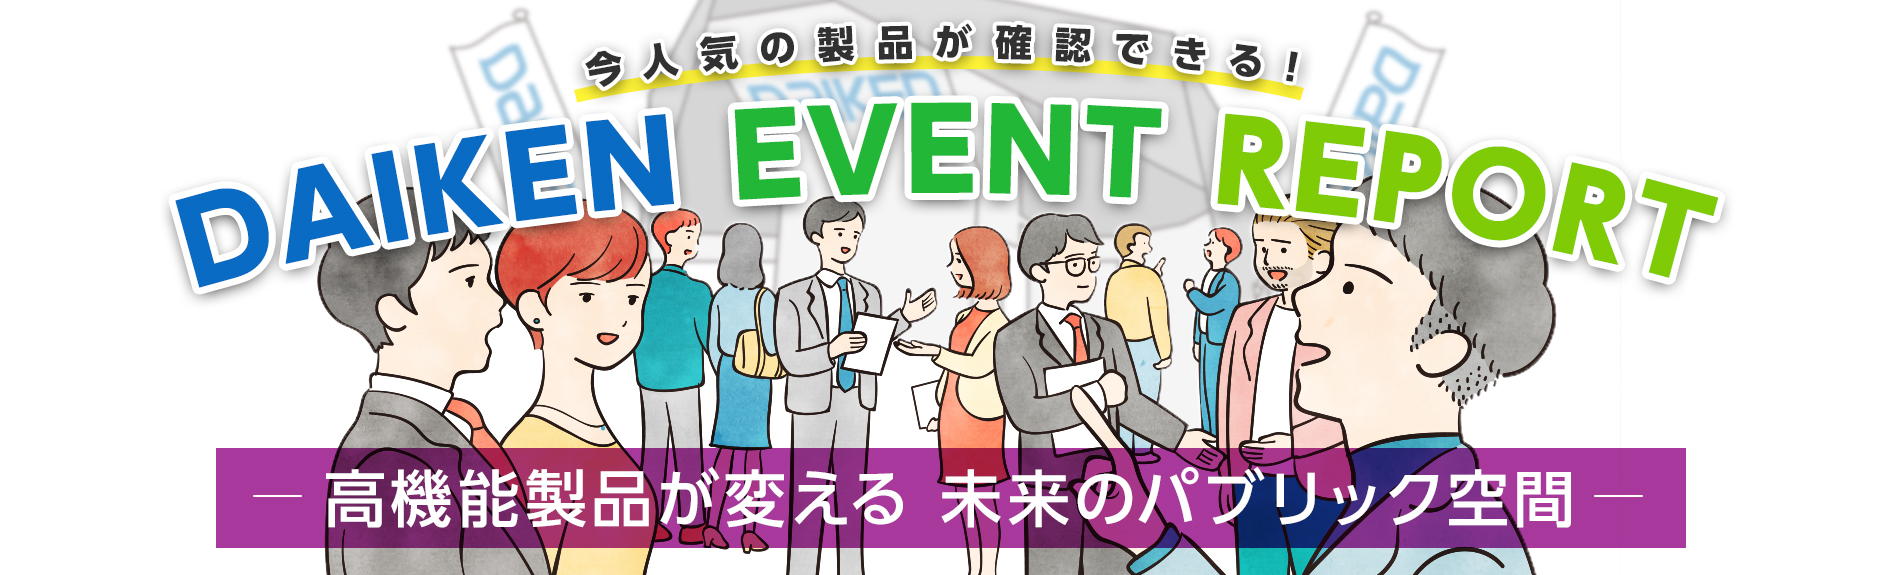 DAIKEN EVENT REPORT